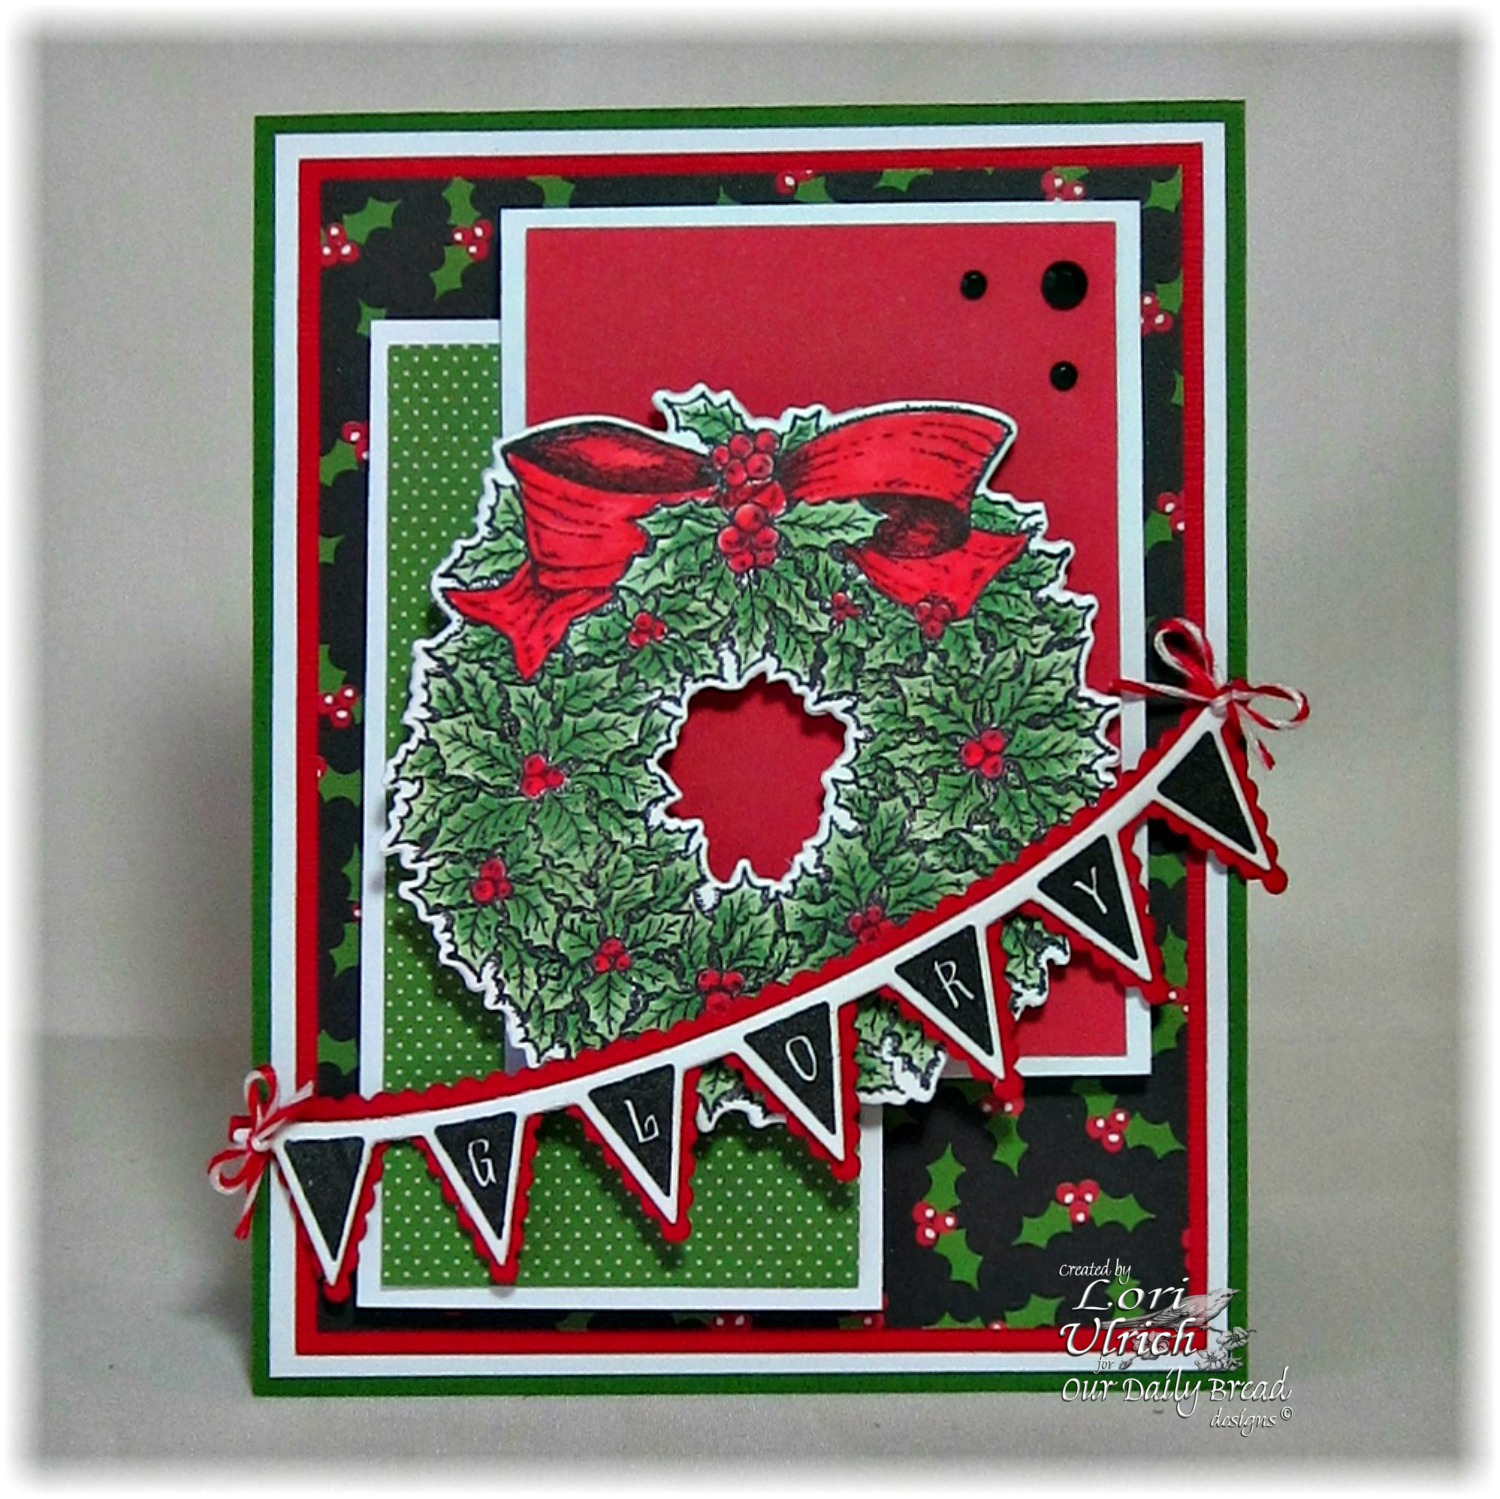 Stamps - Our Daily Bread Designs Christmas Pennant Row, Holly Wreath, ODBD Custom Holly Wreath Die, ODBD Custom Pennant Row Die